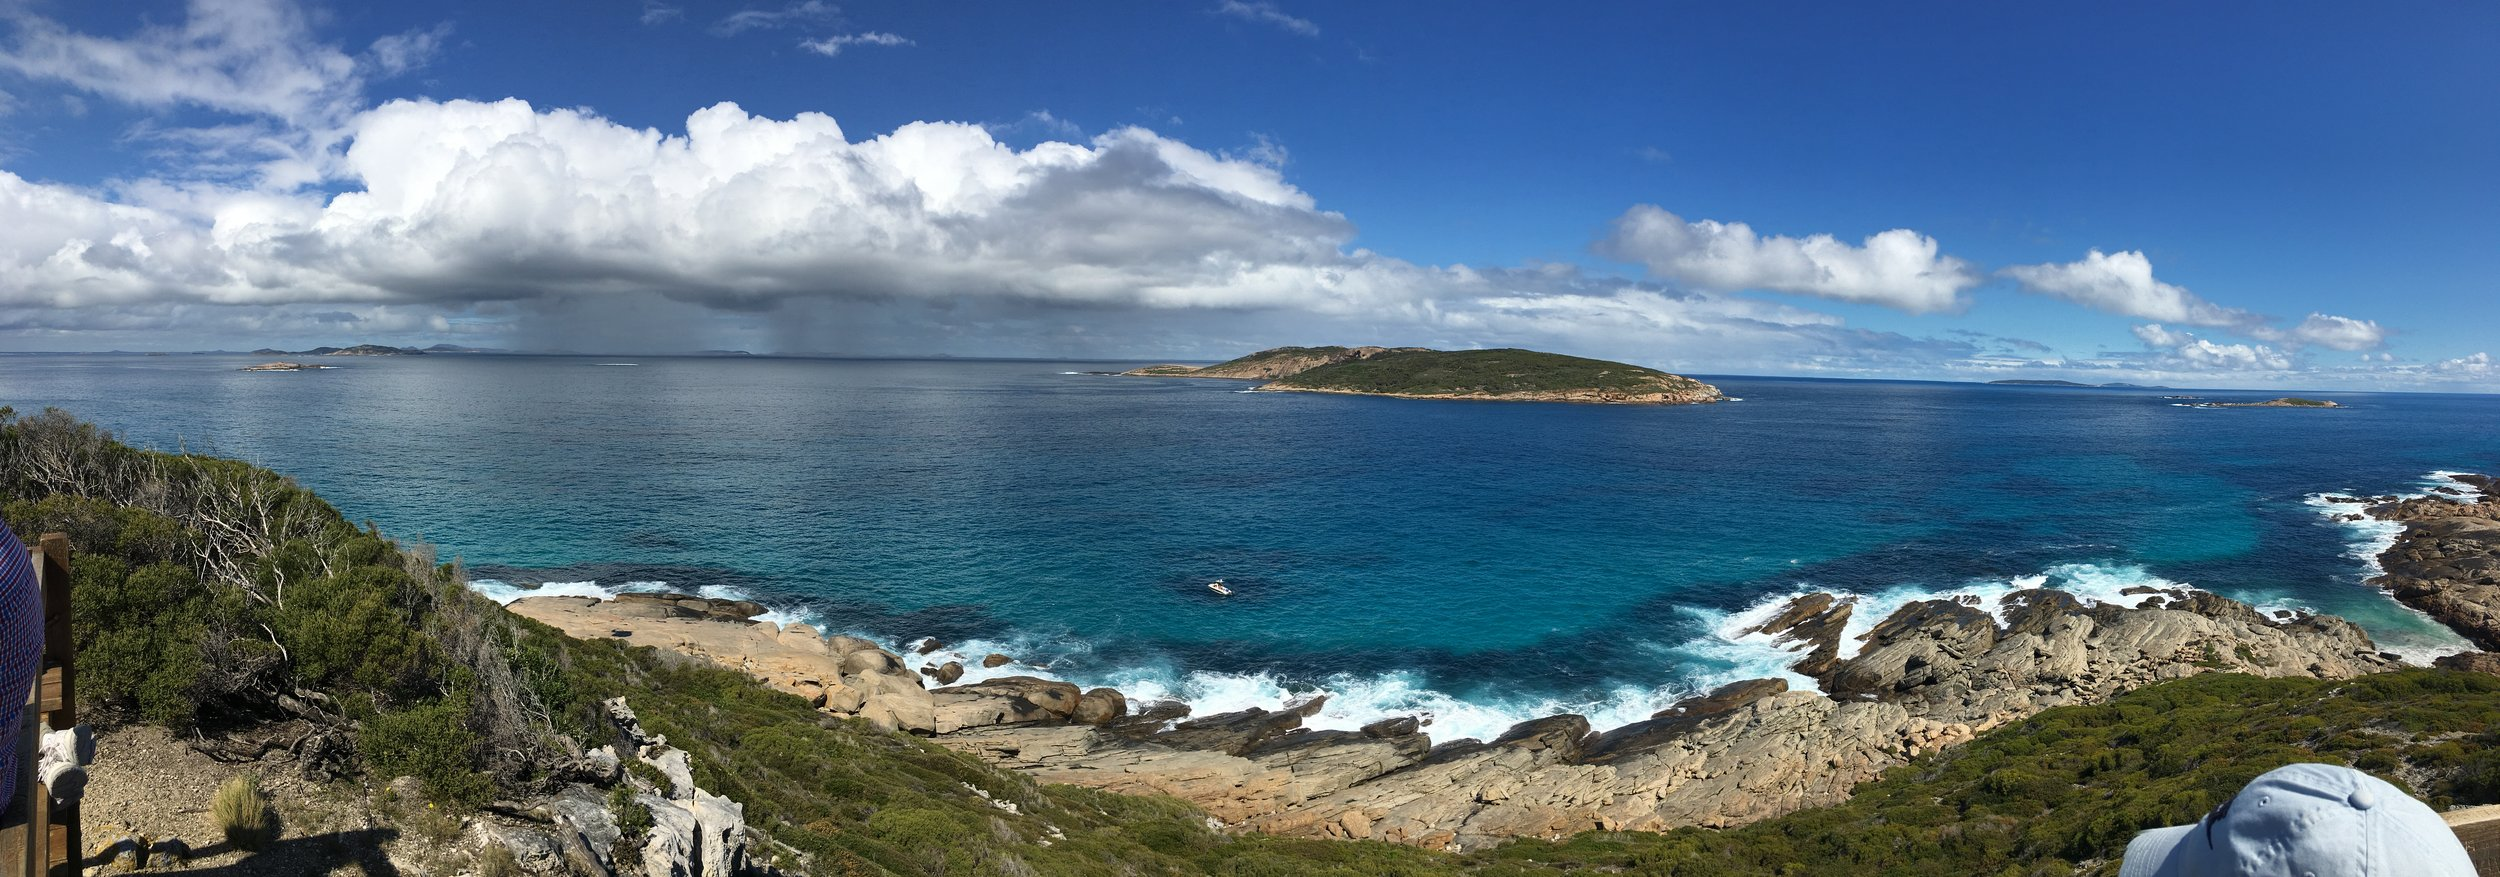 Coastline west of Esperance